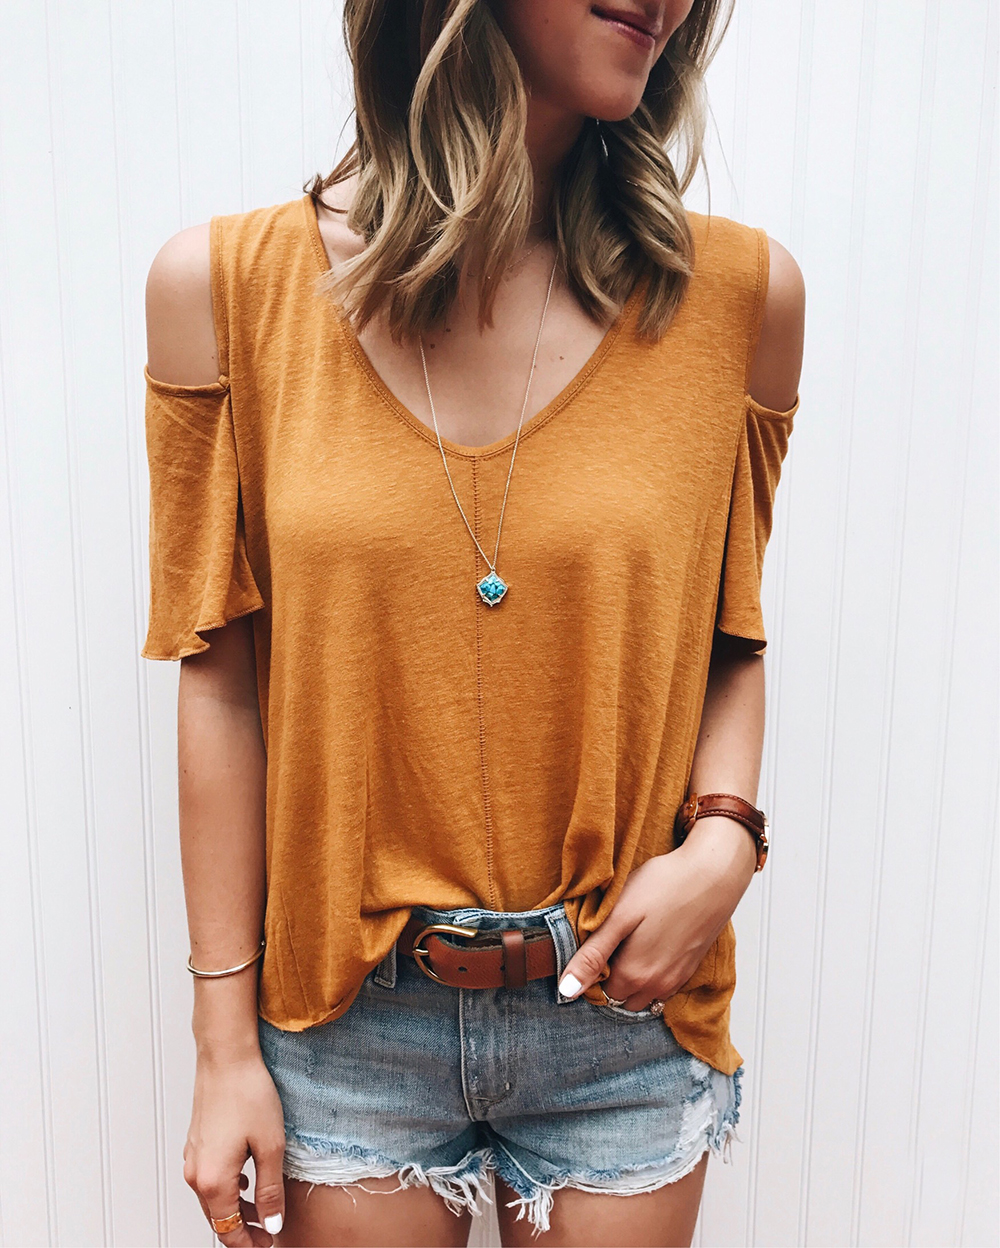 livvyland-blog-olivia-watson-instagram-roundup-june-summer-style-free-people-mustard-top-grlfrnd-shorts